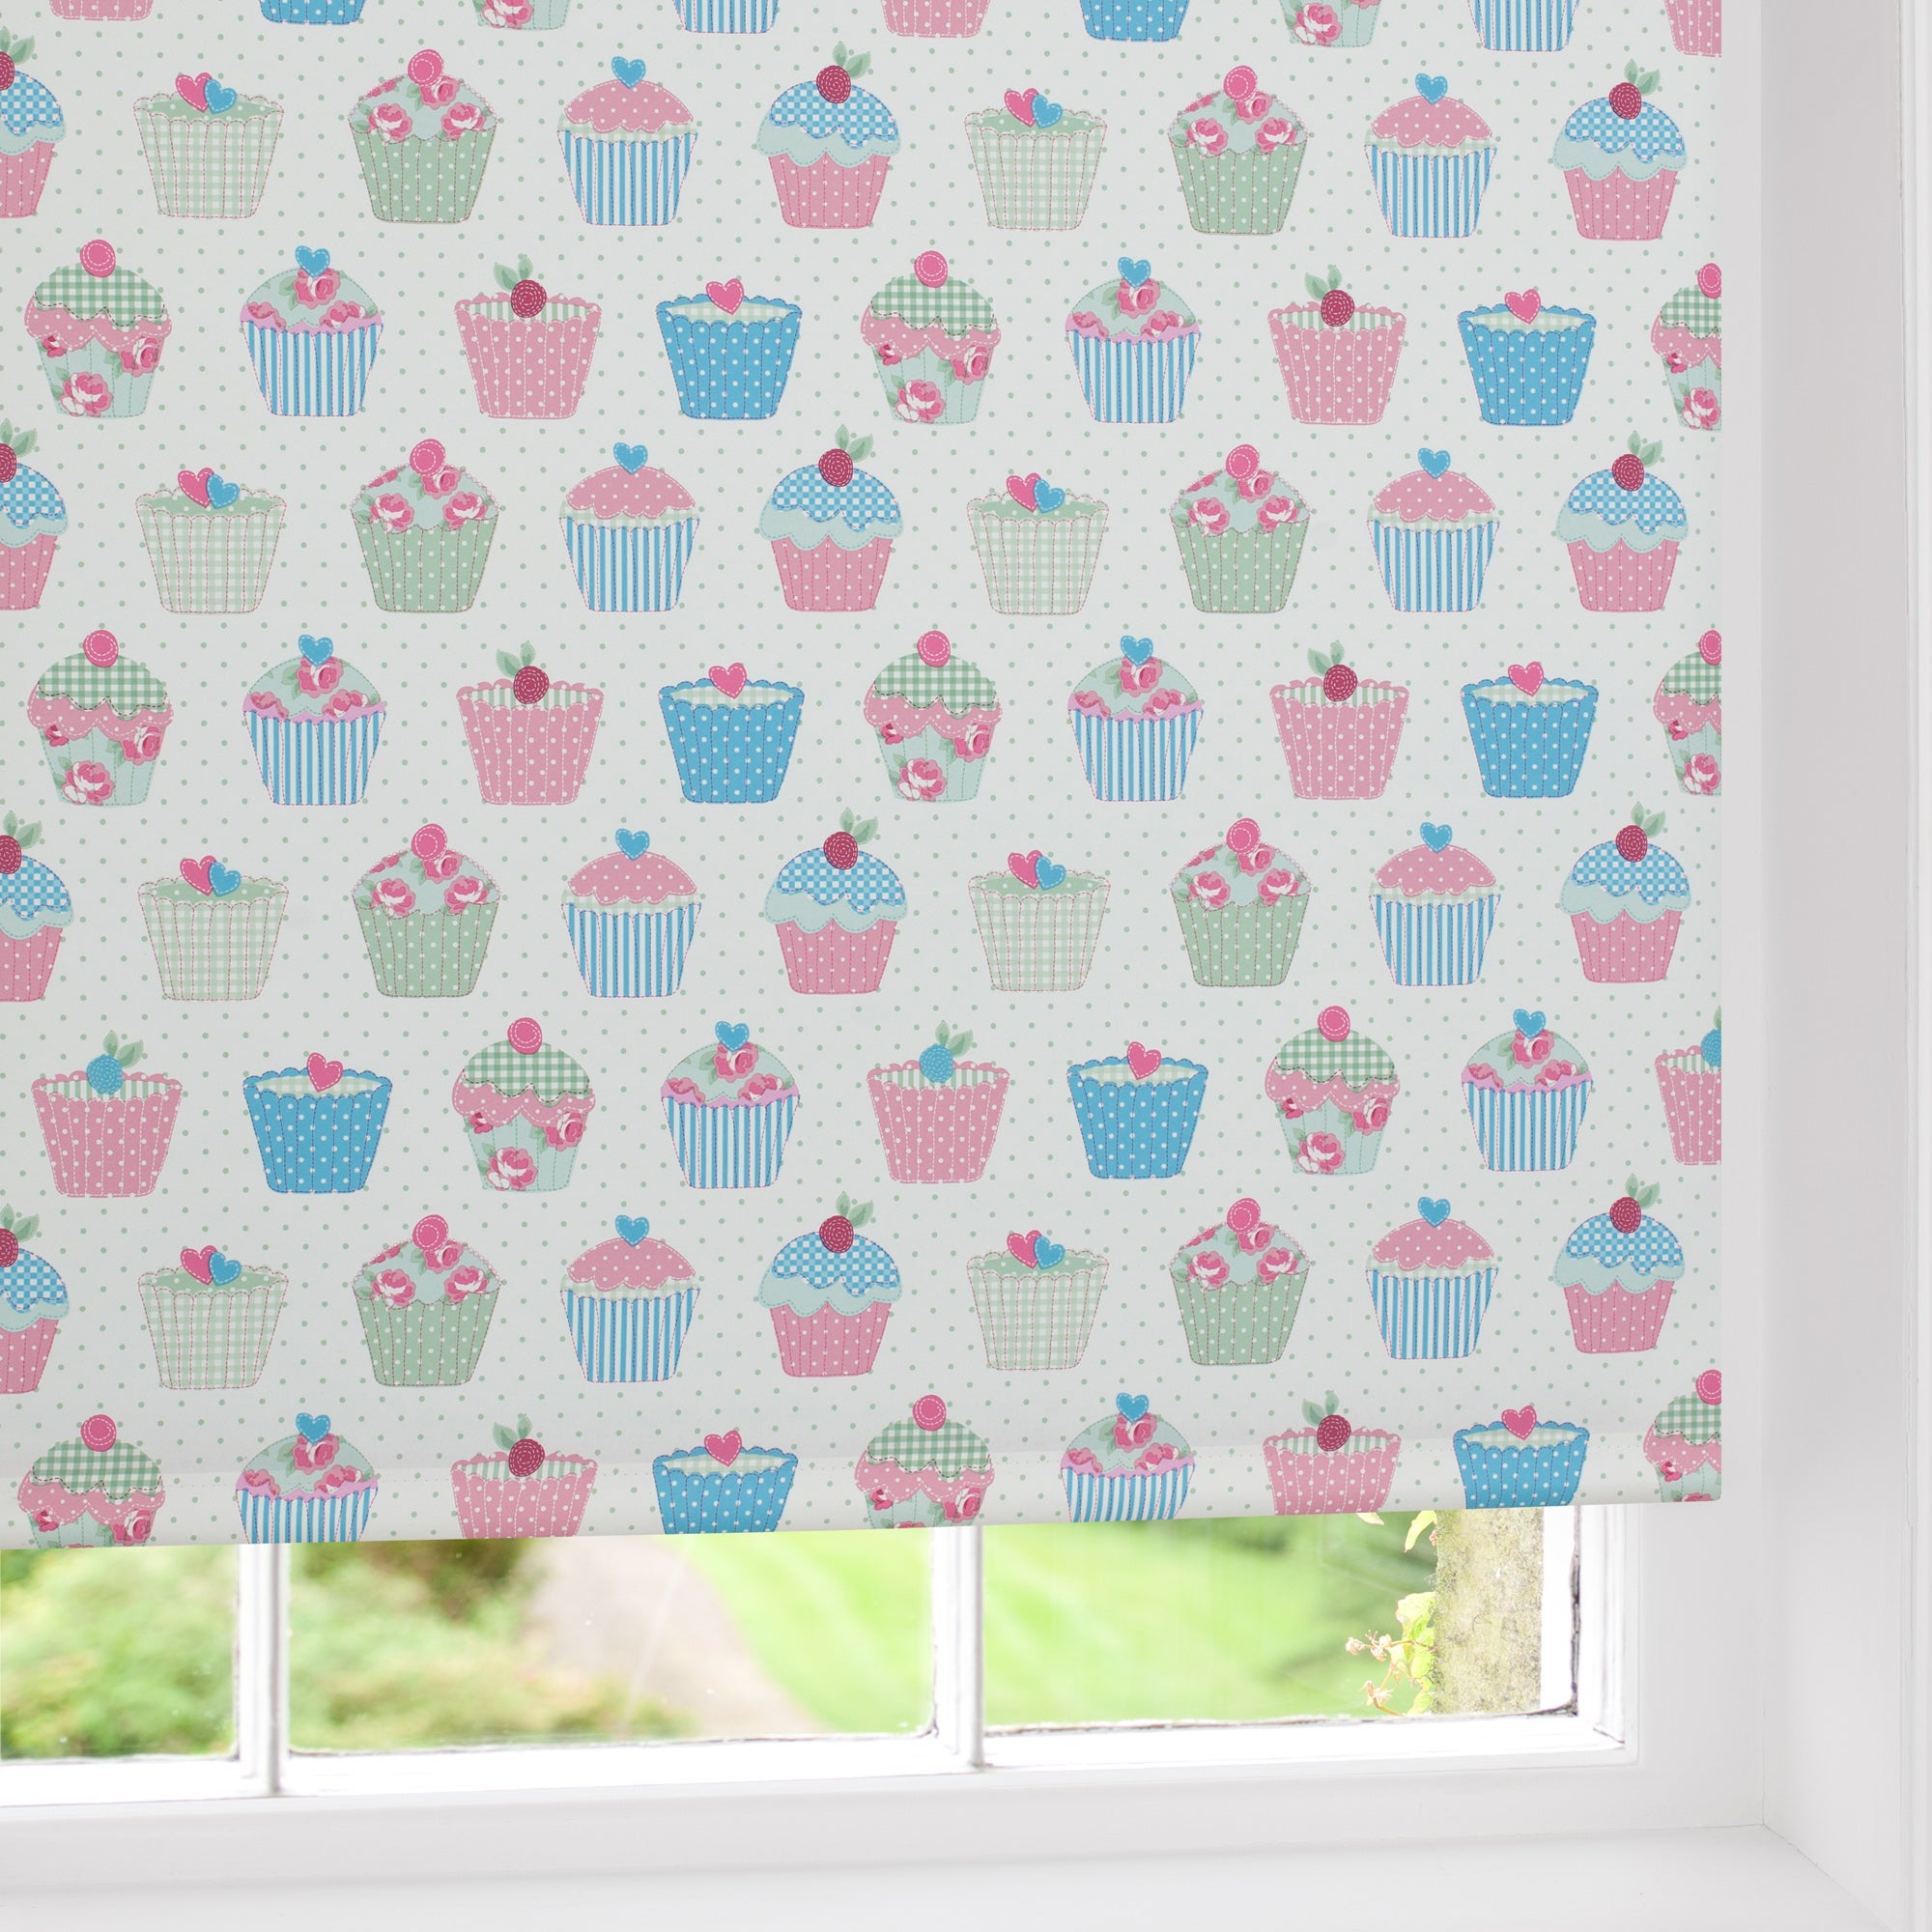 Cupcakes Blackout Roller Blind